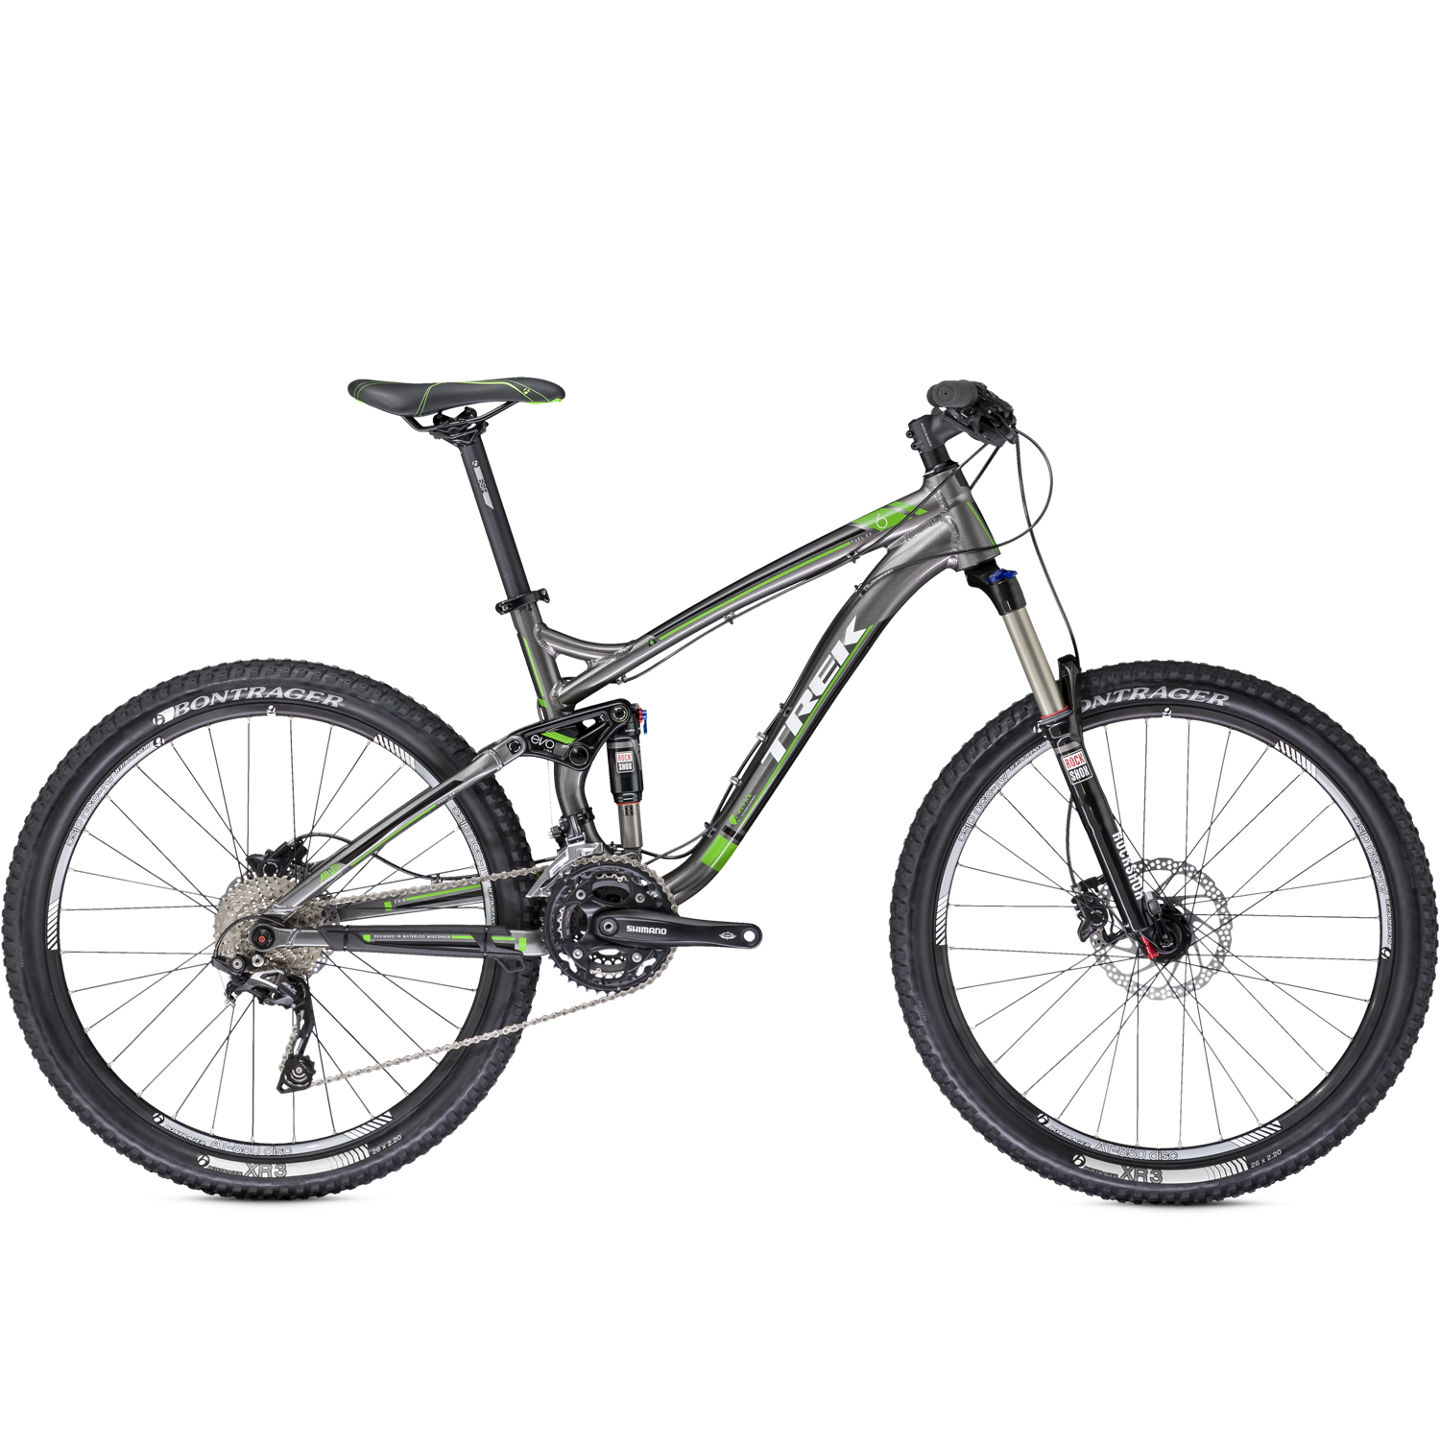 73faa969407 Trek Fuel EX 6 - Marty's Reliable Cycle